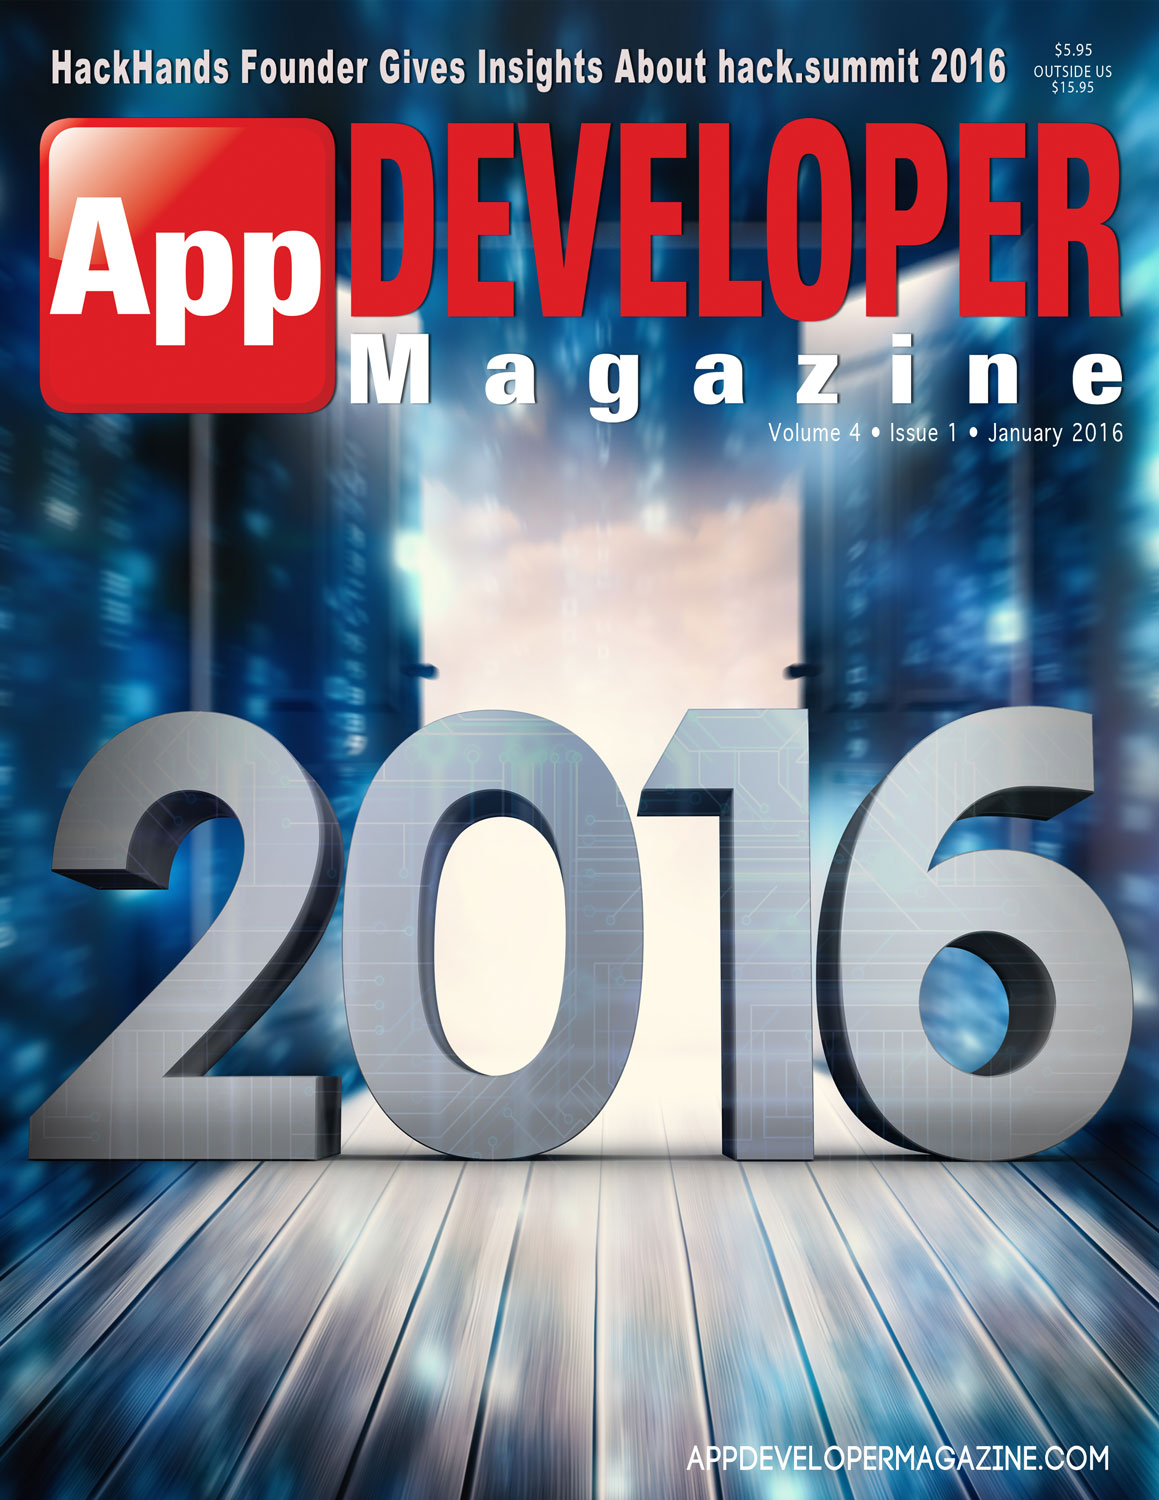 Read App Developer Magazine January 2016 issue